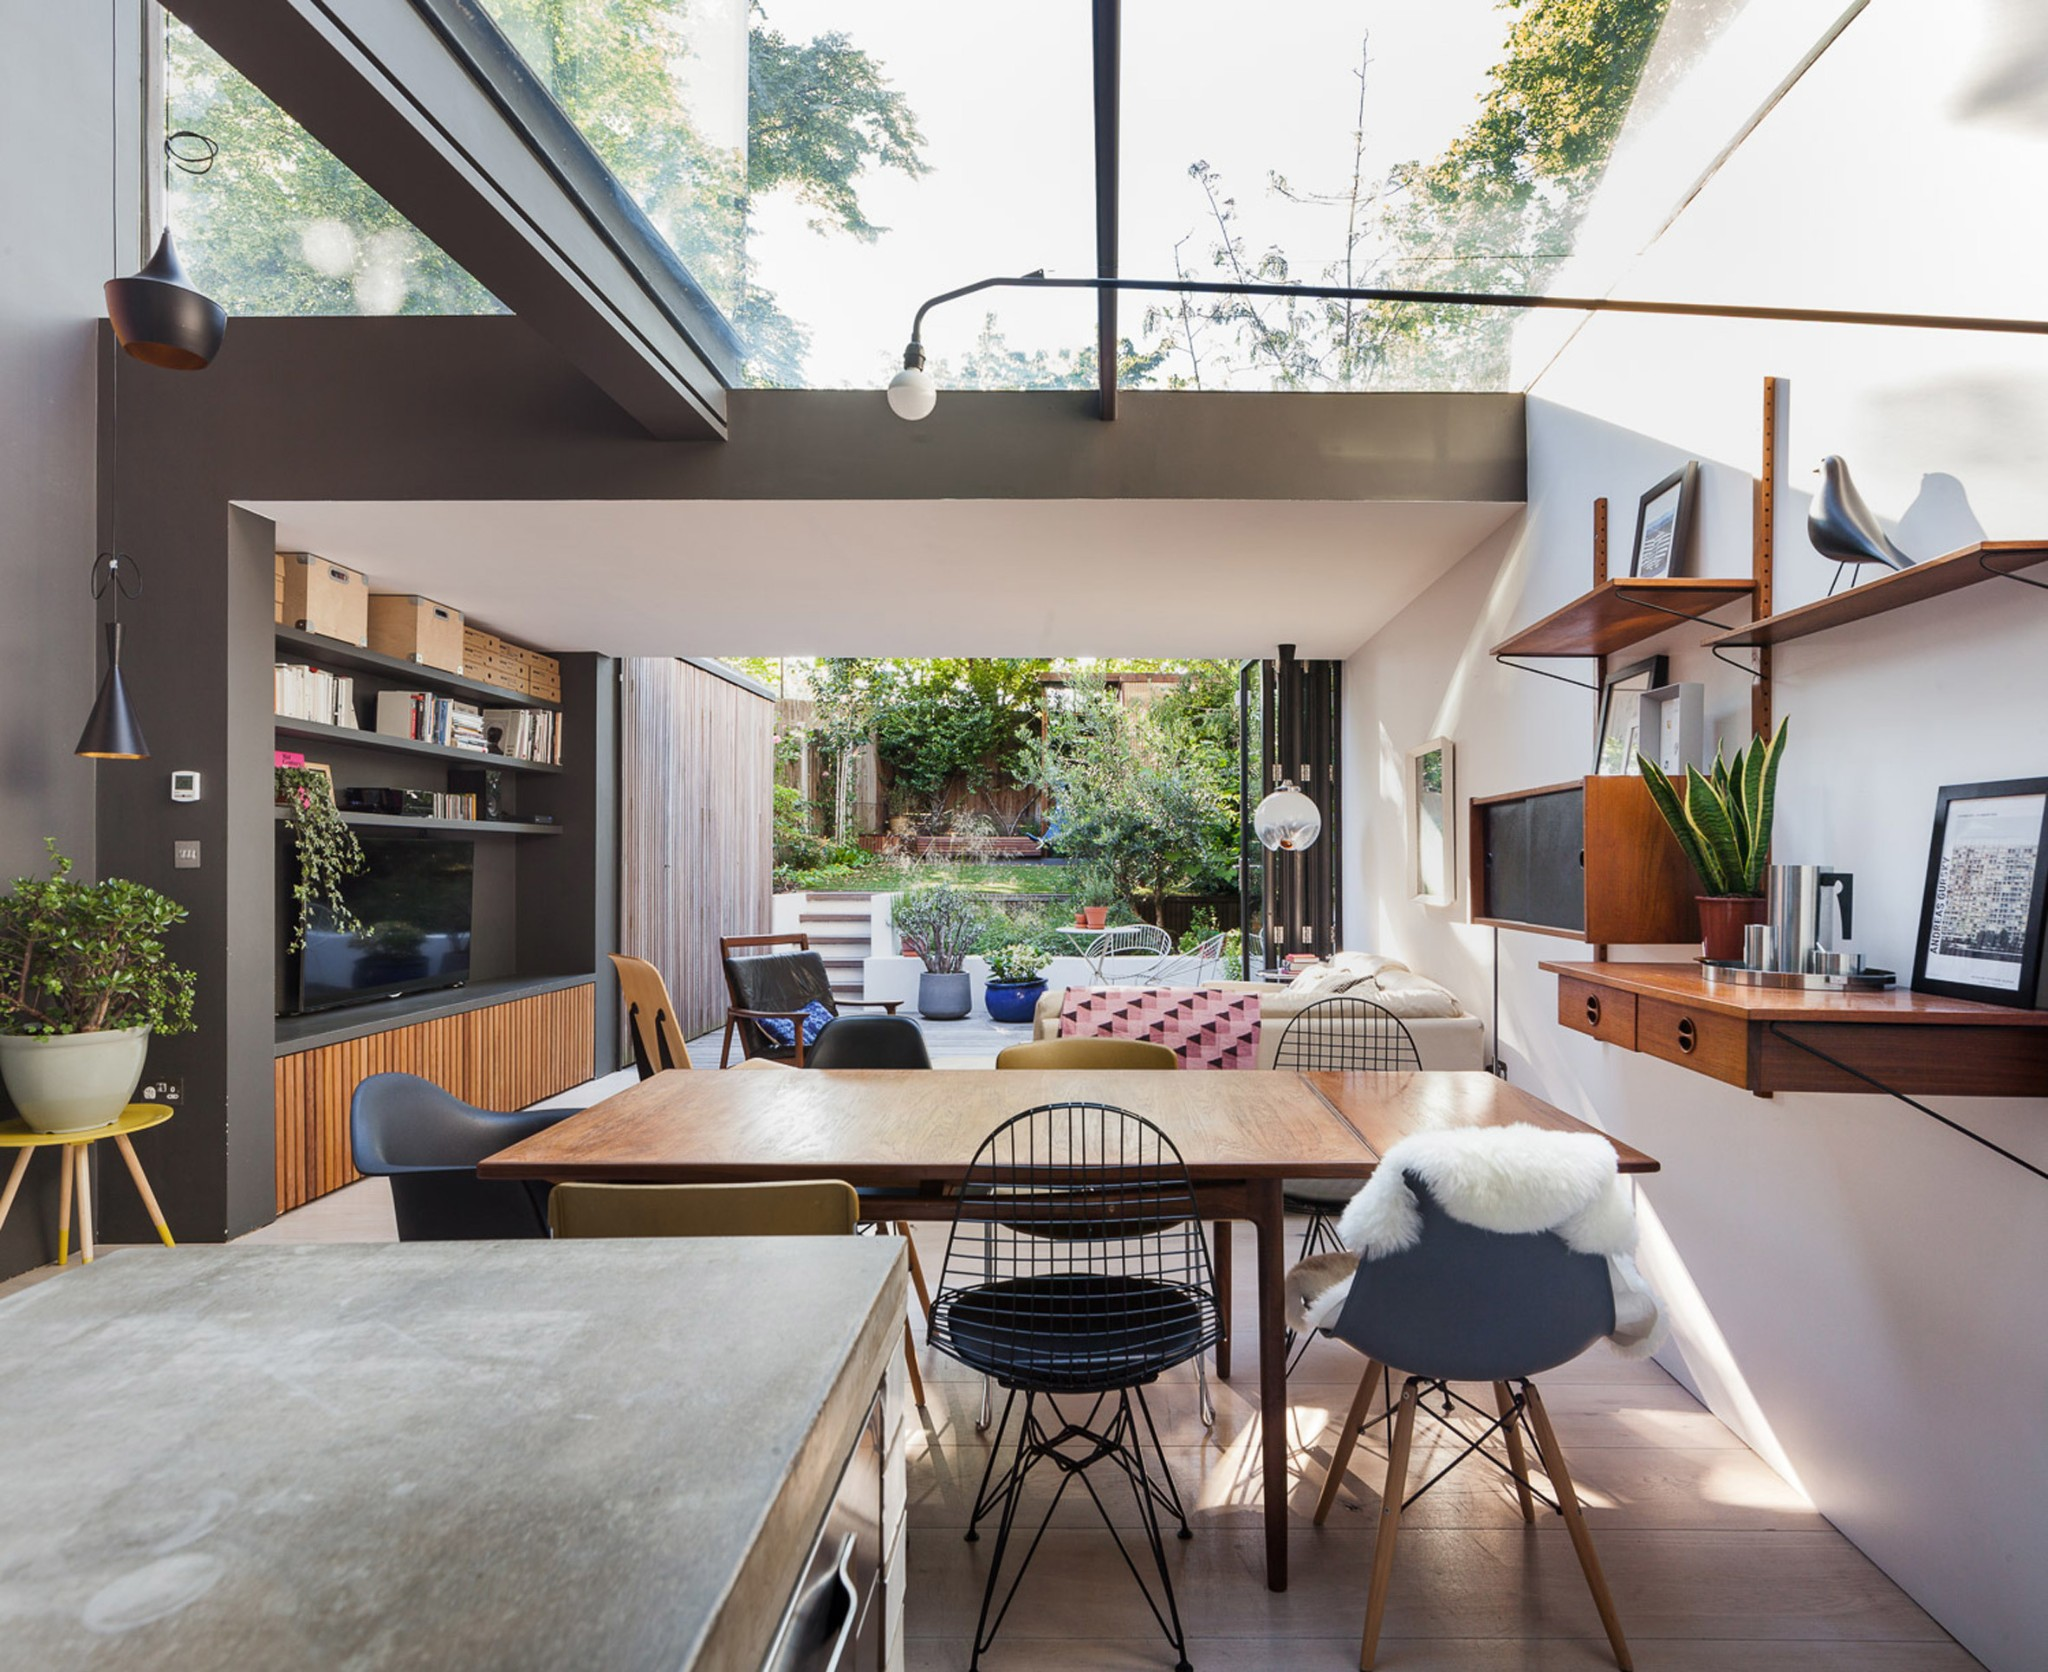 Home extension ideas: 10 looks to inspire your renovation